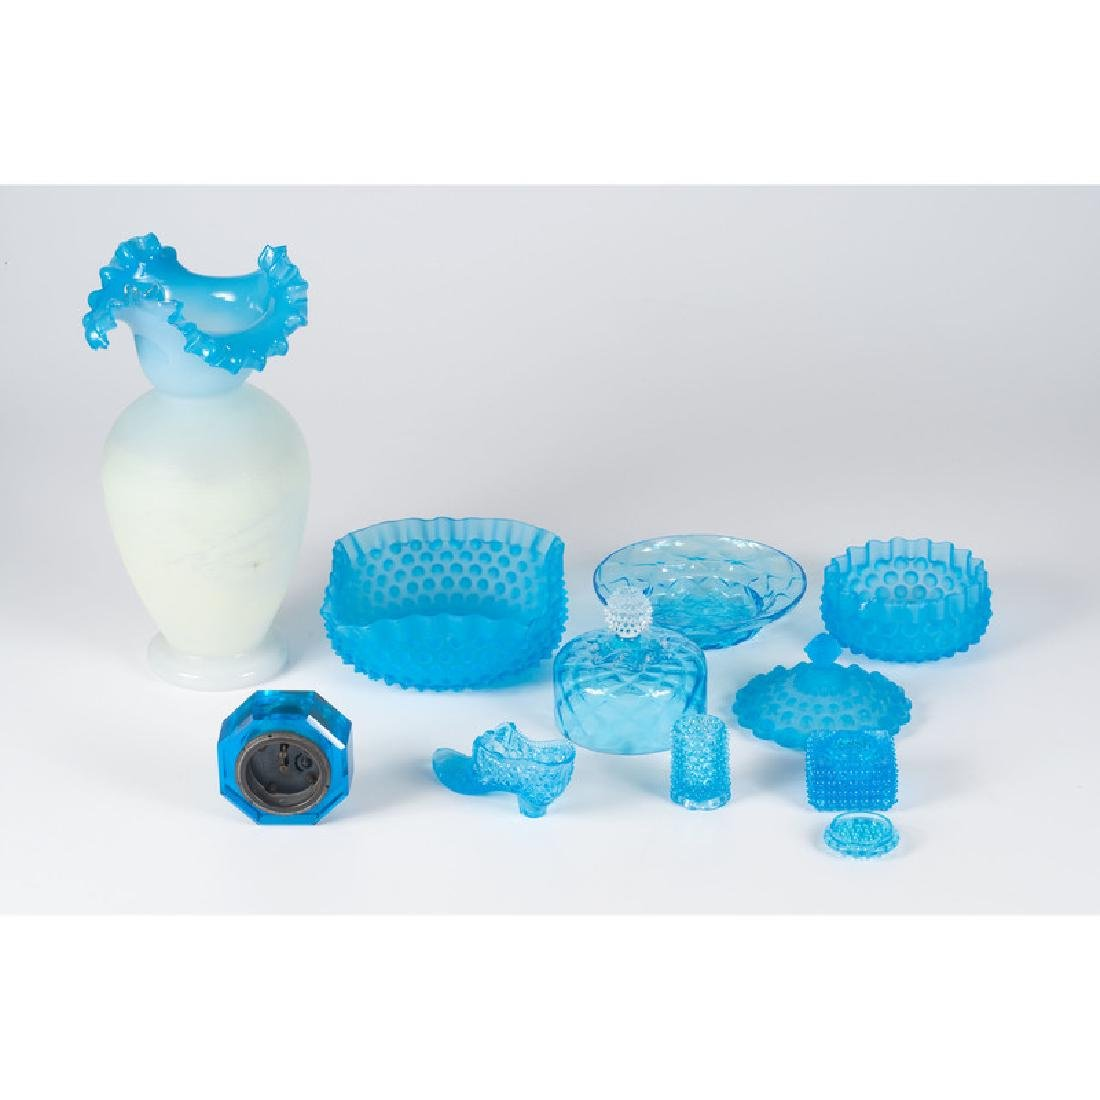 Victorian Blue Glass Tablewares - 2